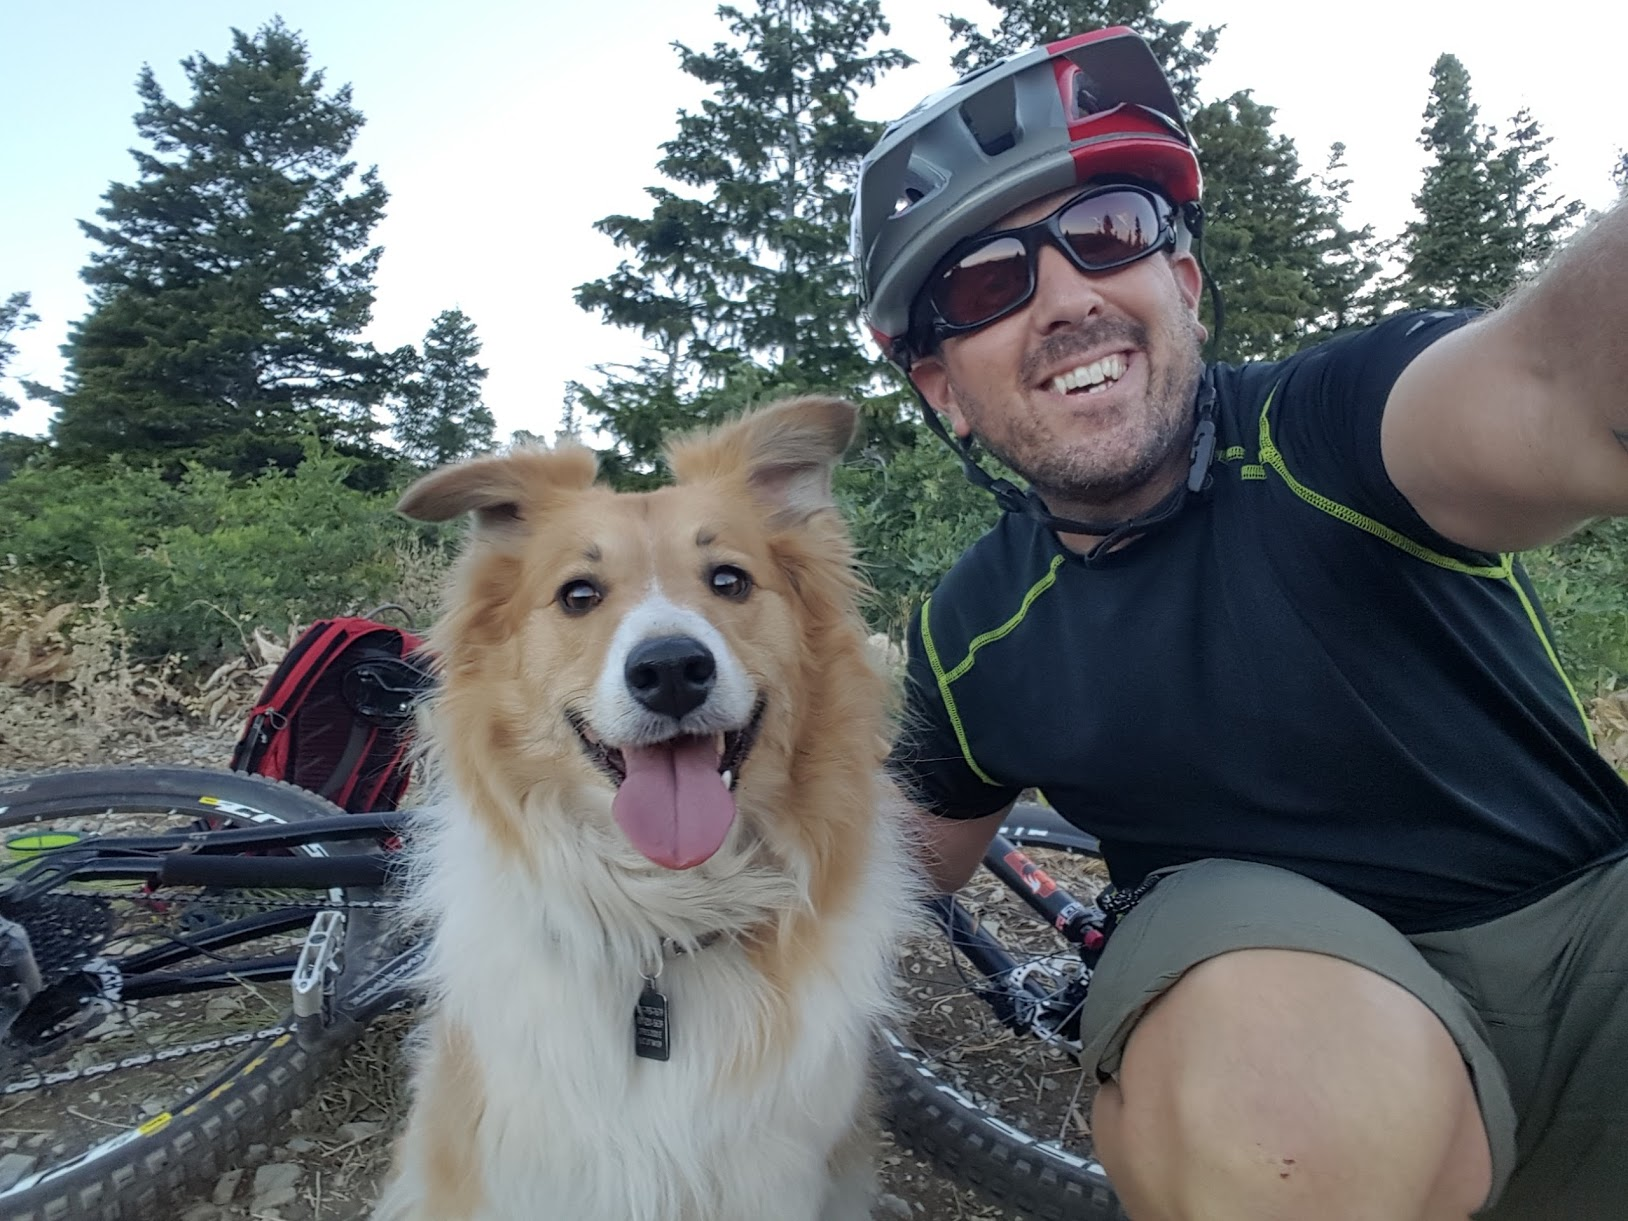 Happy Mountain Bike Dog